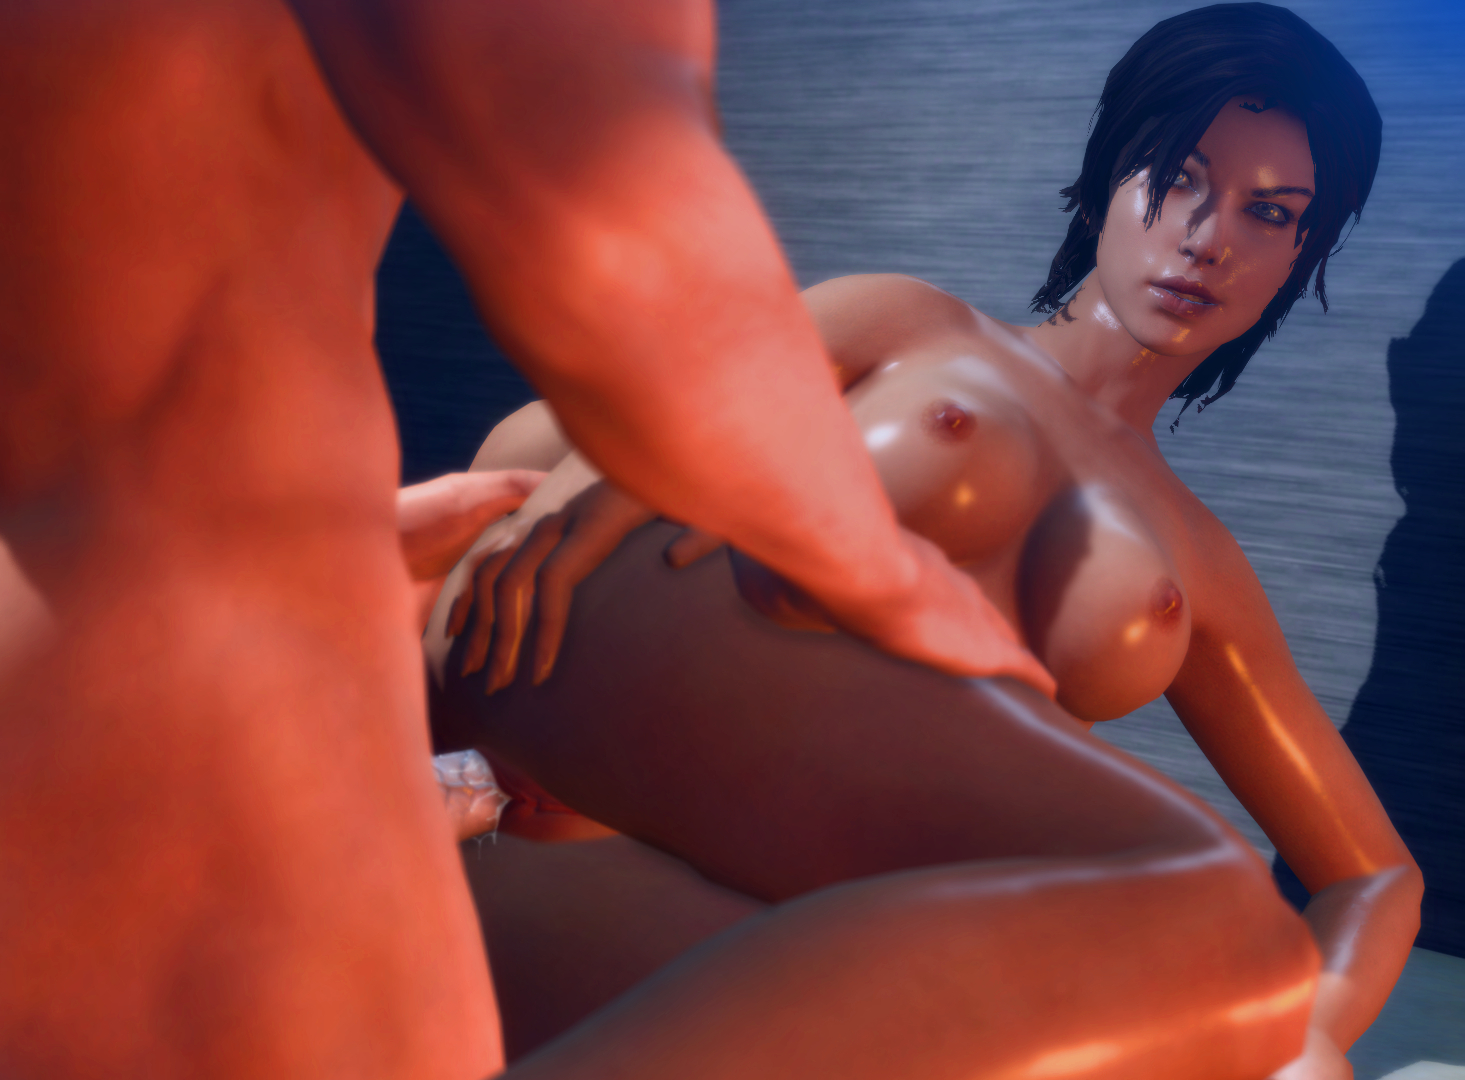 Tomb raider 2013 hentai tube hentai photos